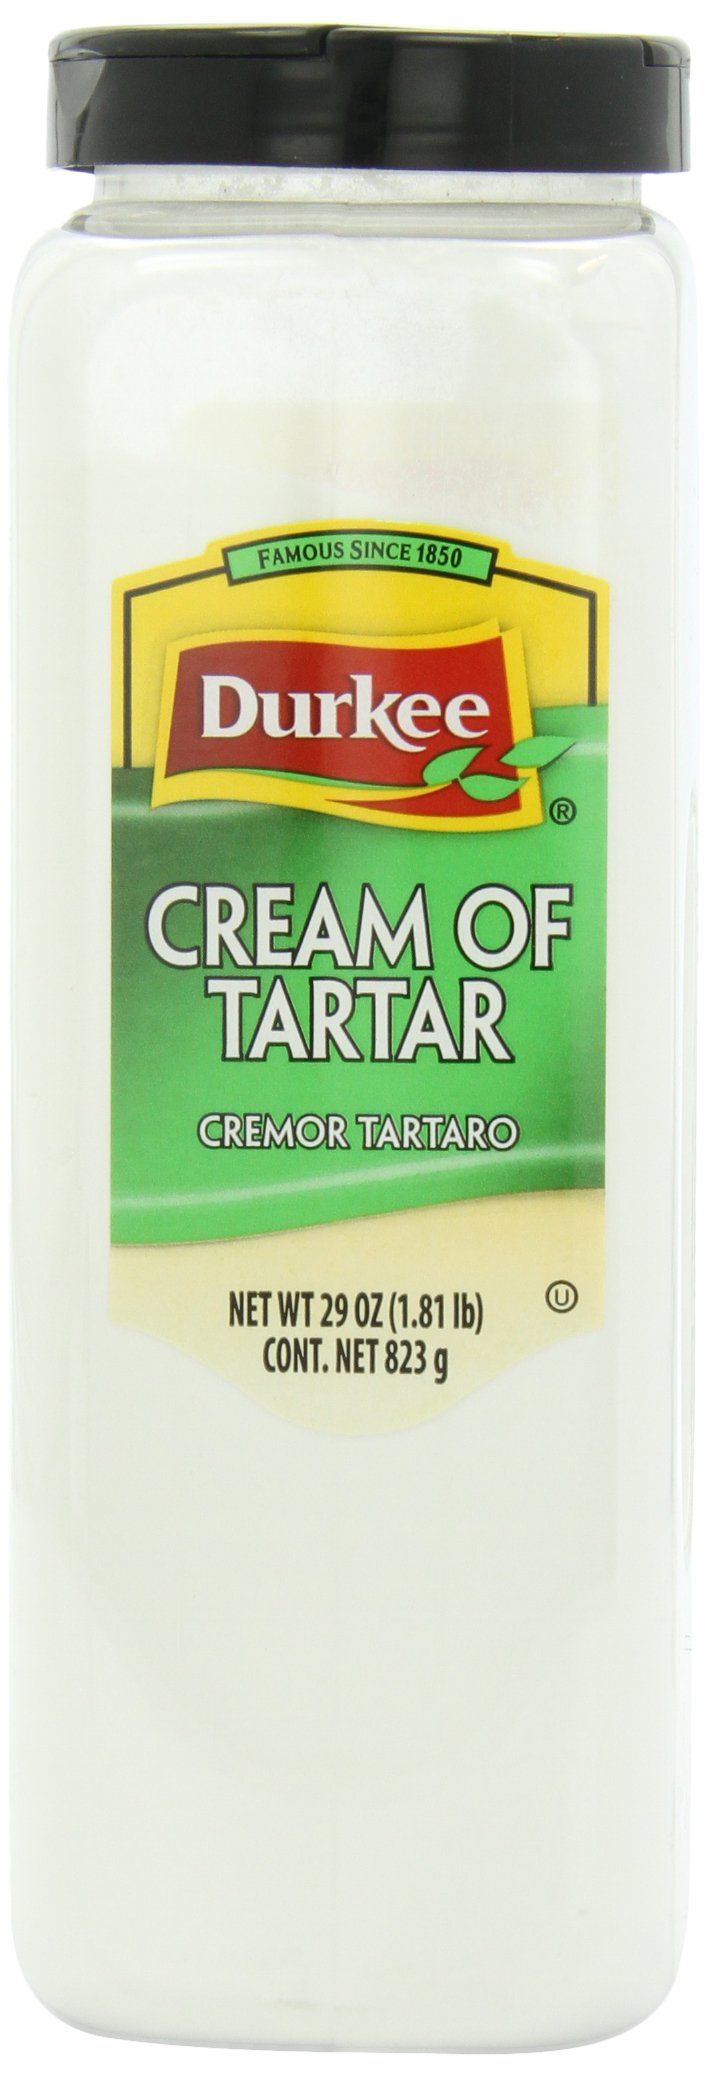 Durkee Cream Of Tartar, 29-Ounce by Durkee